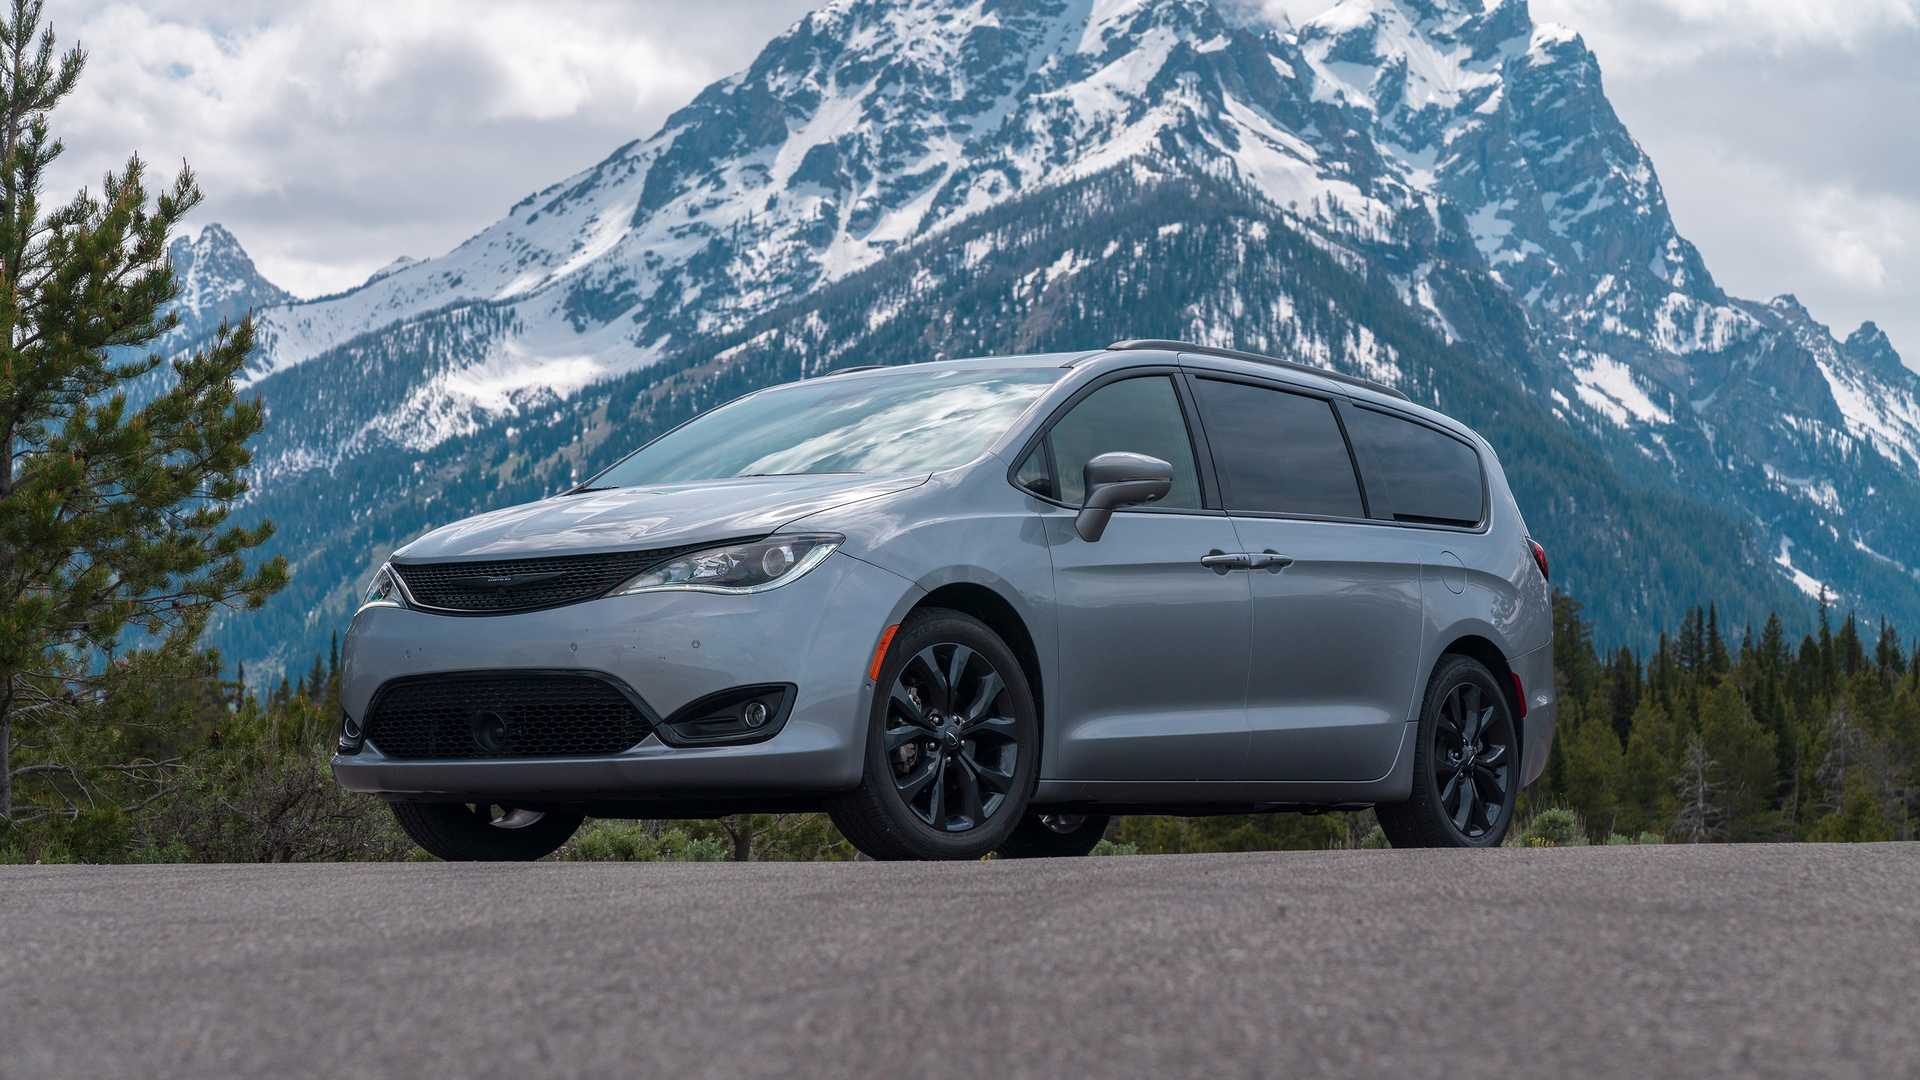 2020_Chrysler_Pacifica_Red_S_Edition_0011